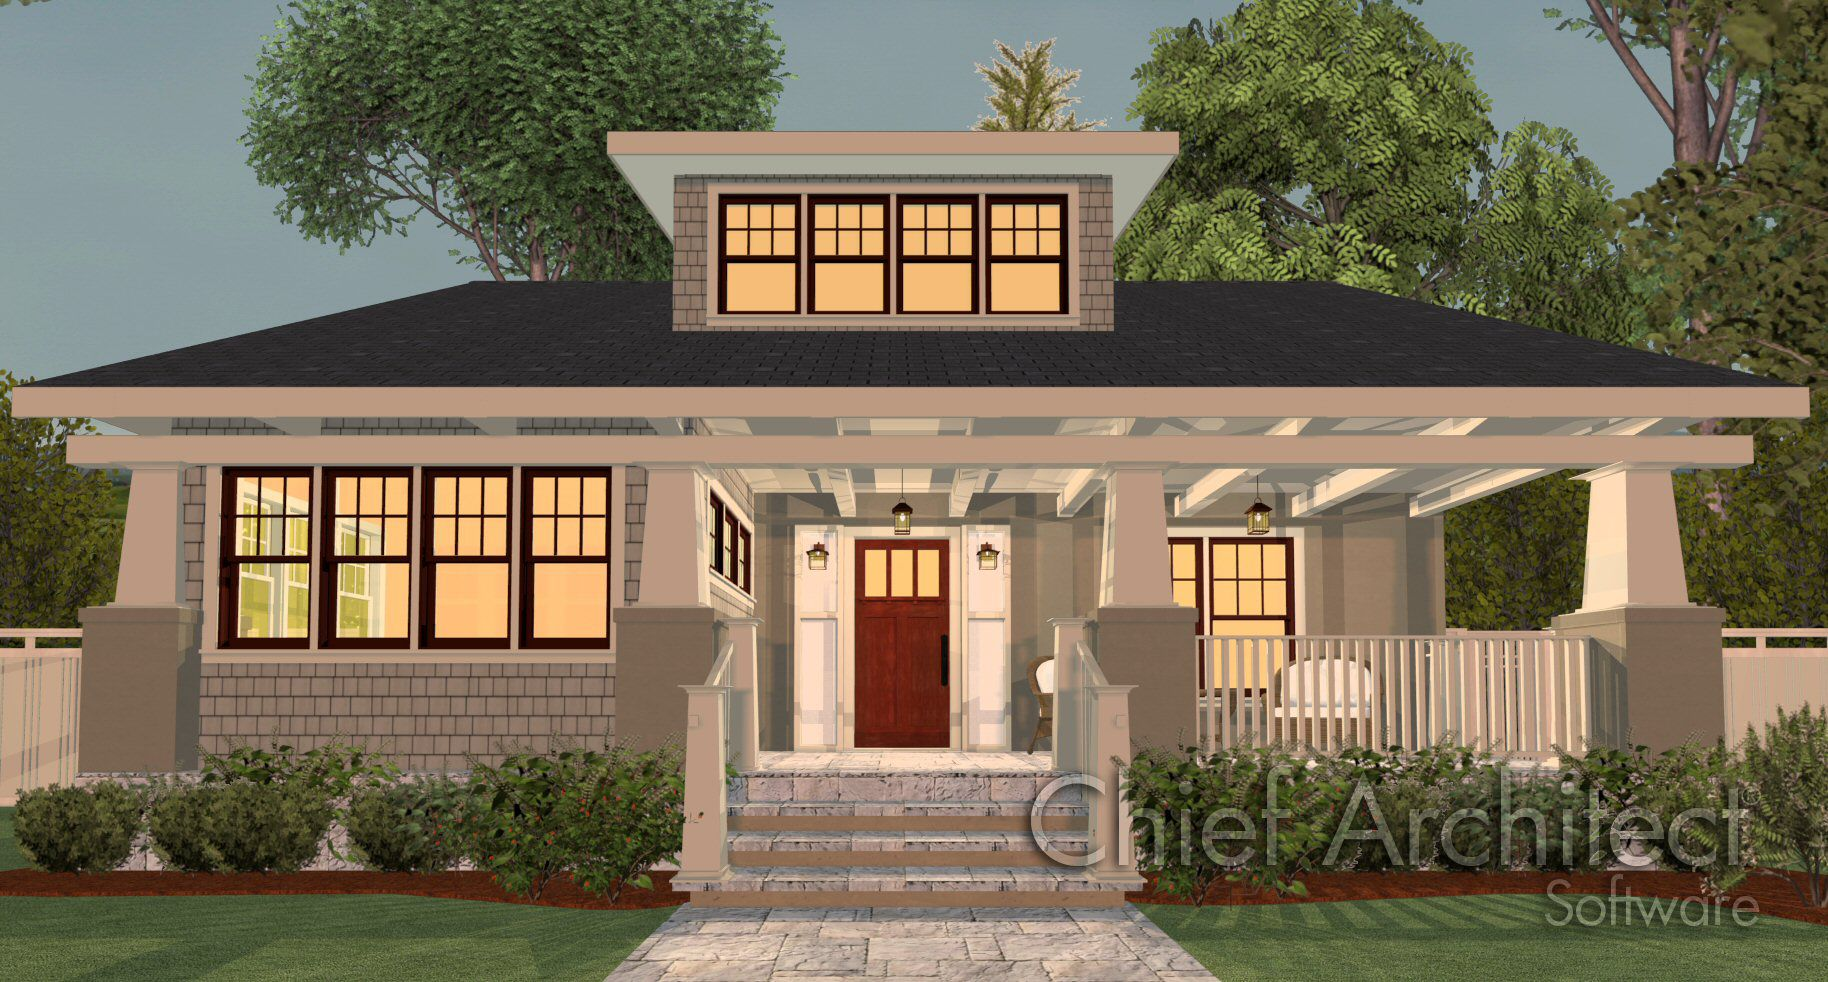 How Easy to Use is Home Design Software